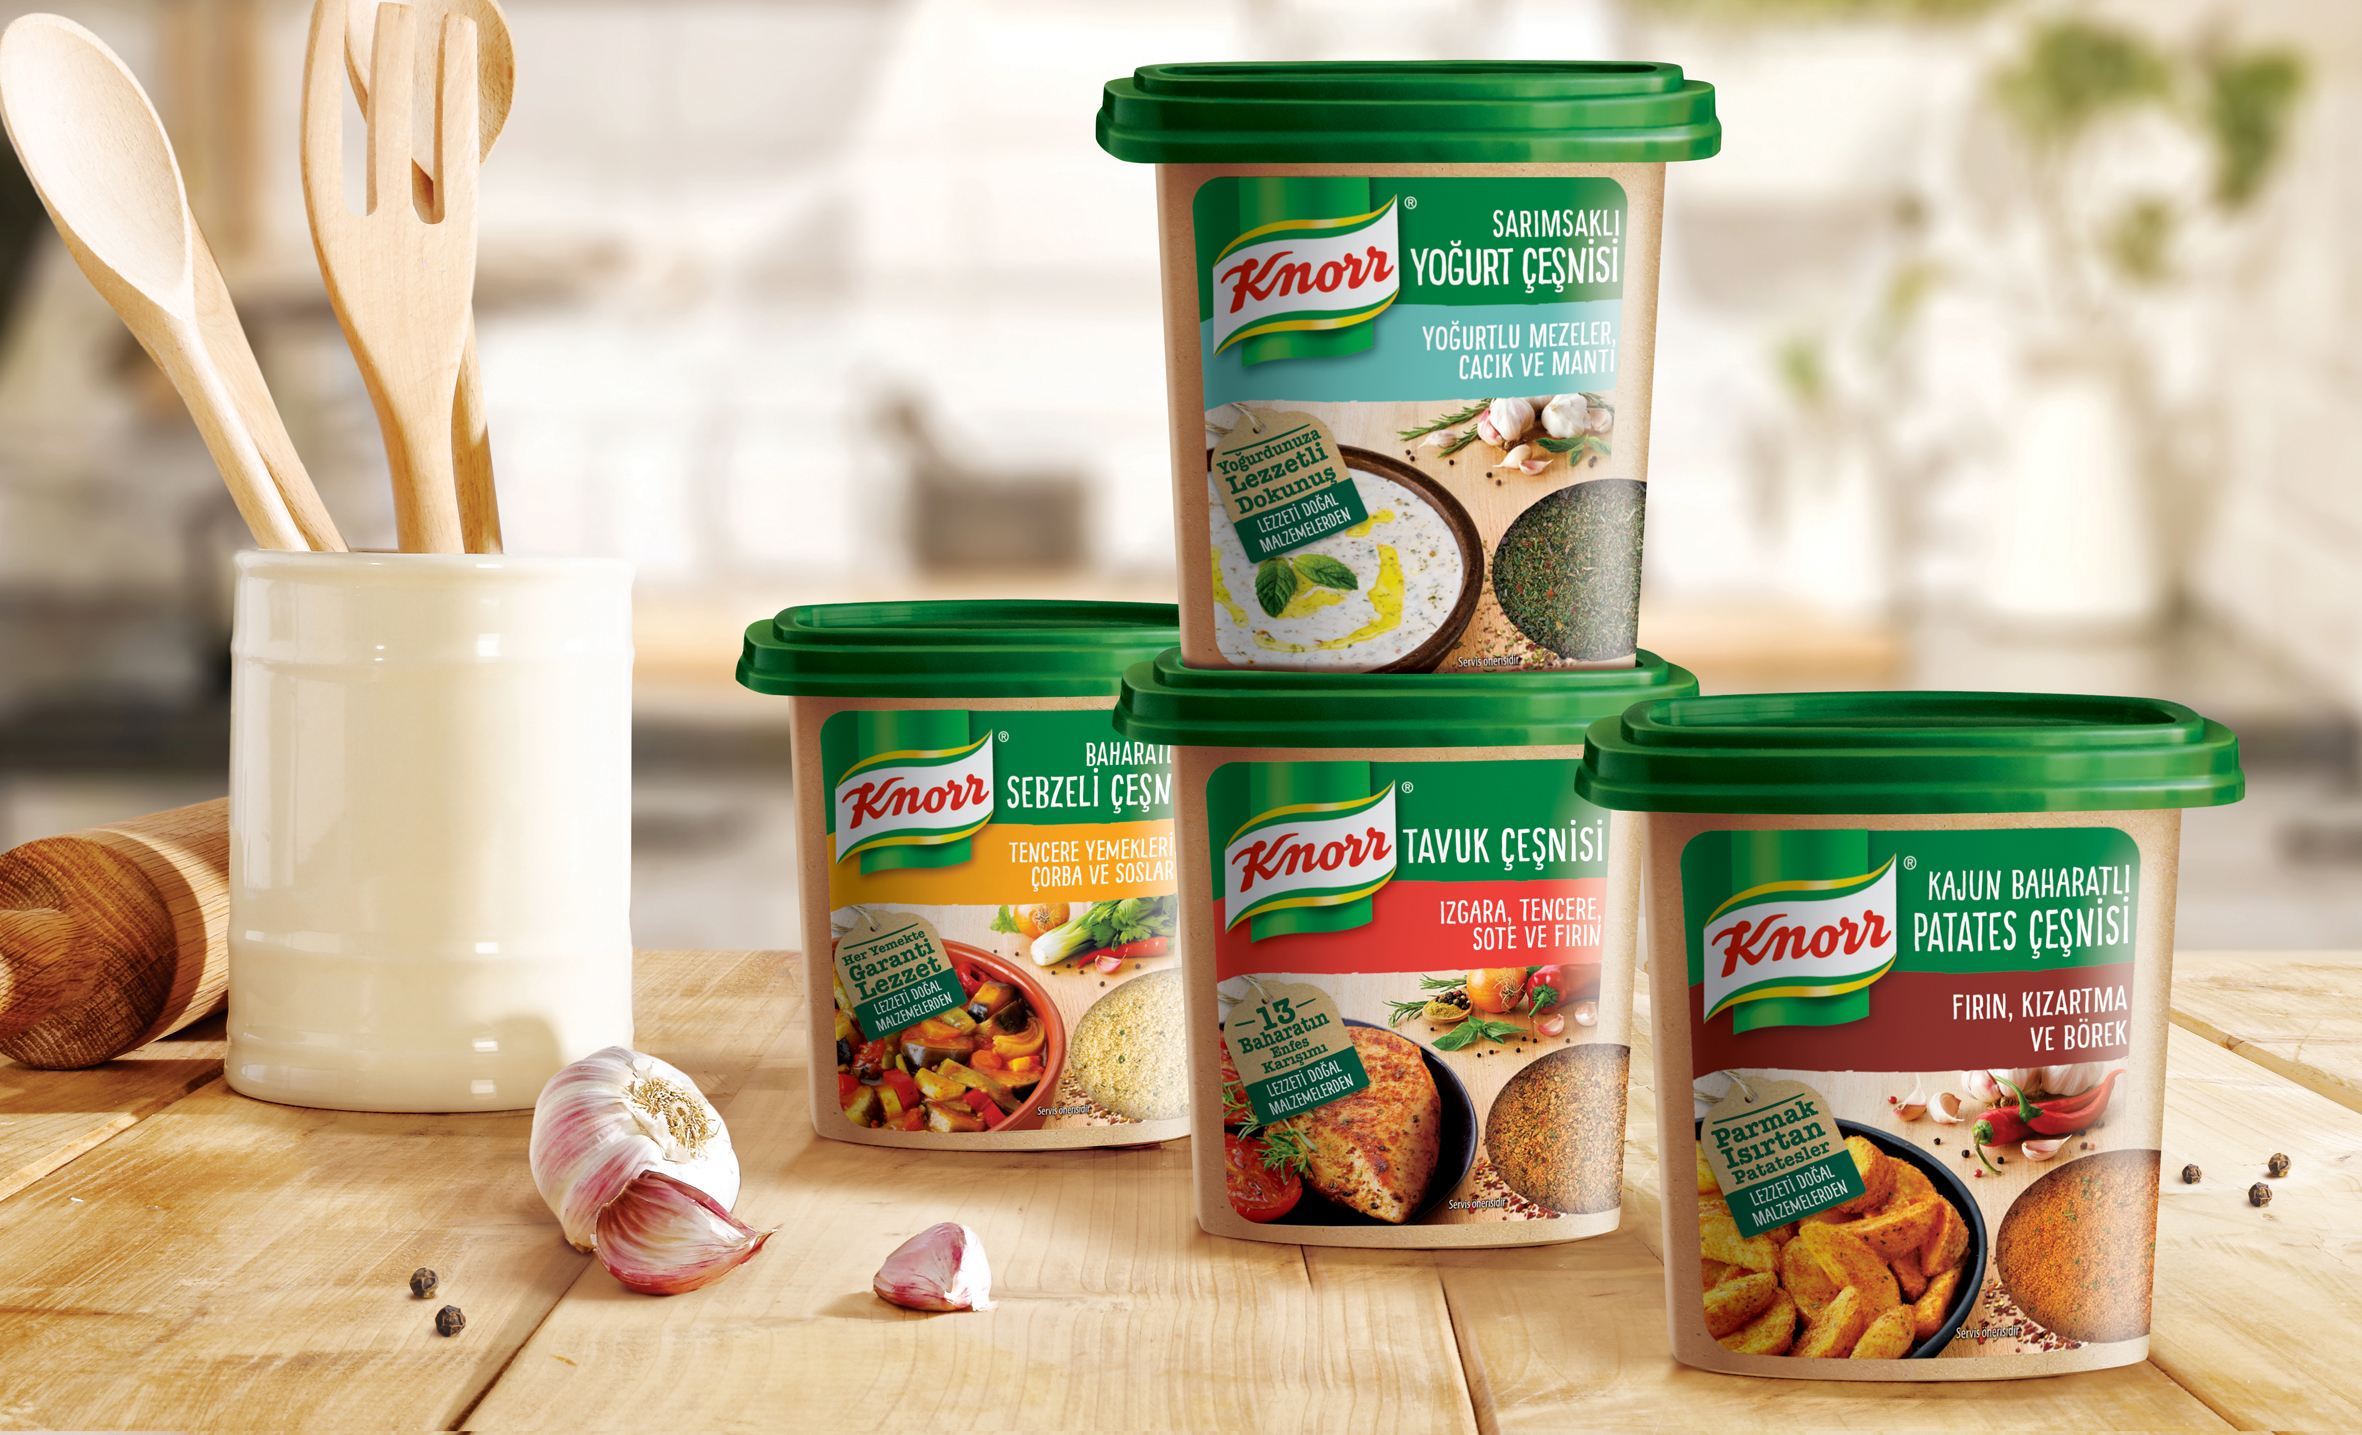 New Packaging Design for Knorr Seasoning Series in the Turkish Market